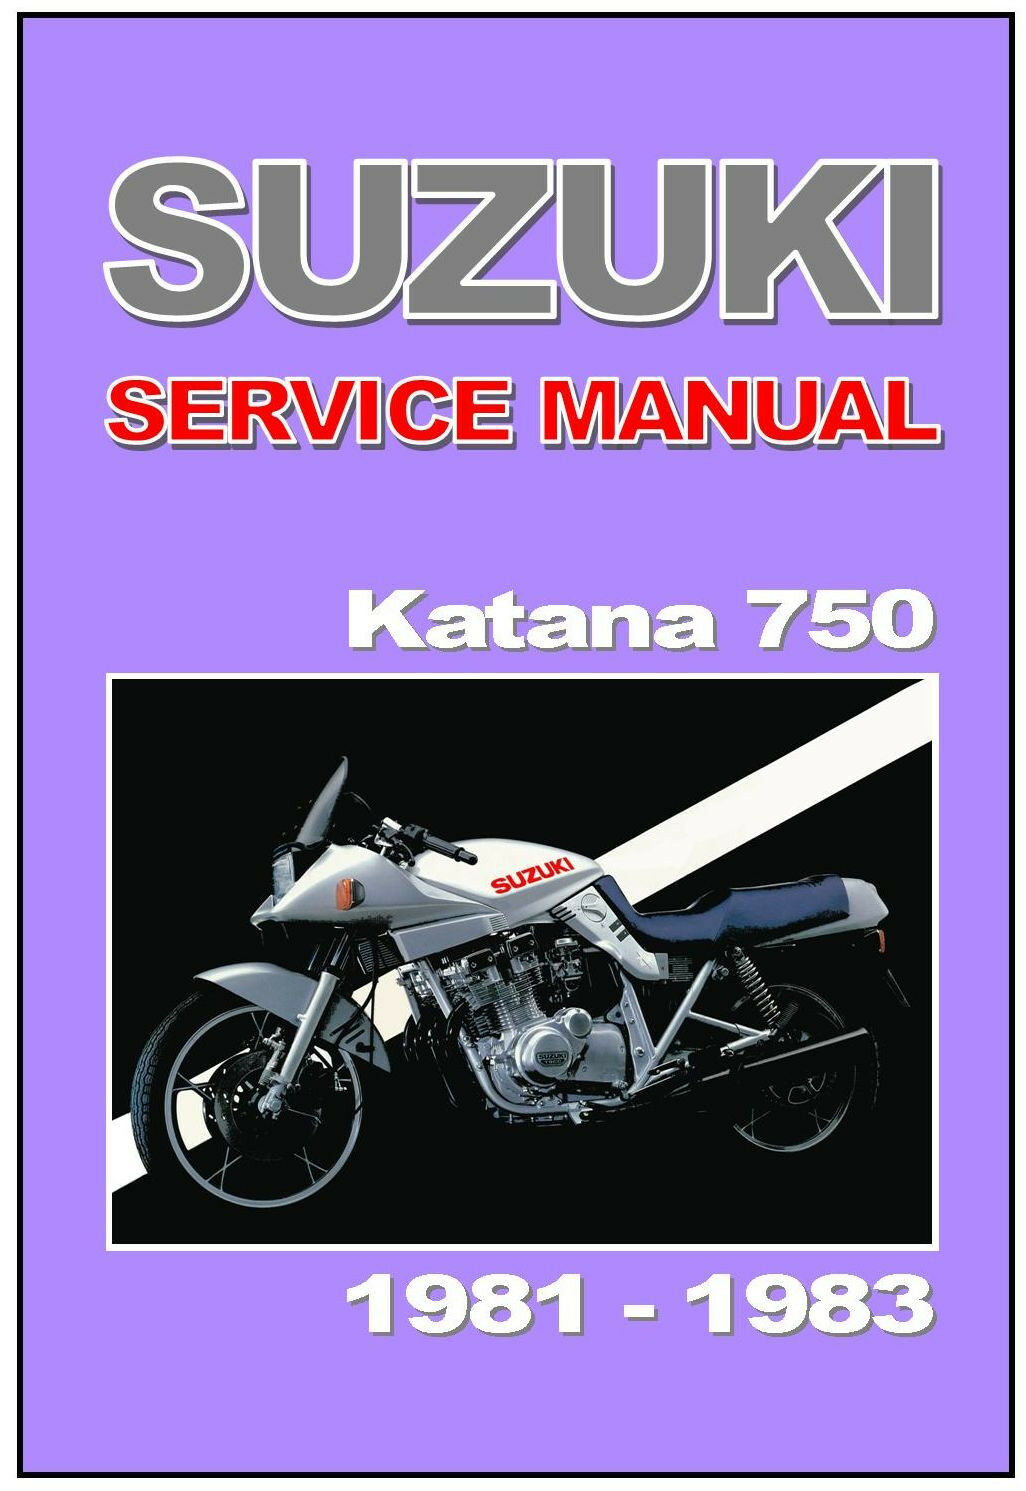 SUZUKI Workshop Manual GS750S GSX750S KATANA 1981 1982 & 1983 Service &  Repair 1 of 5Only 1 available See More